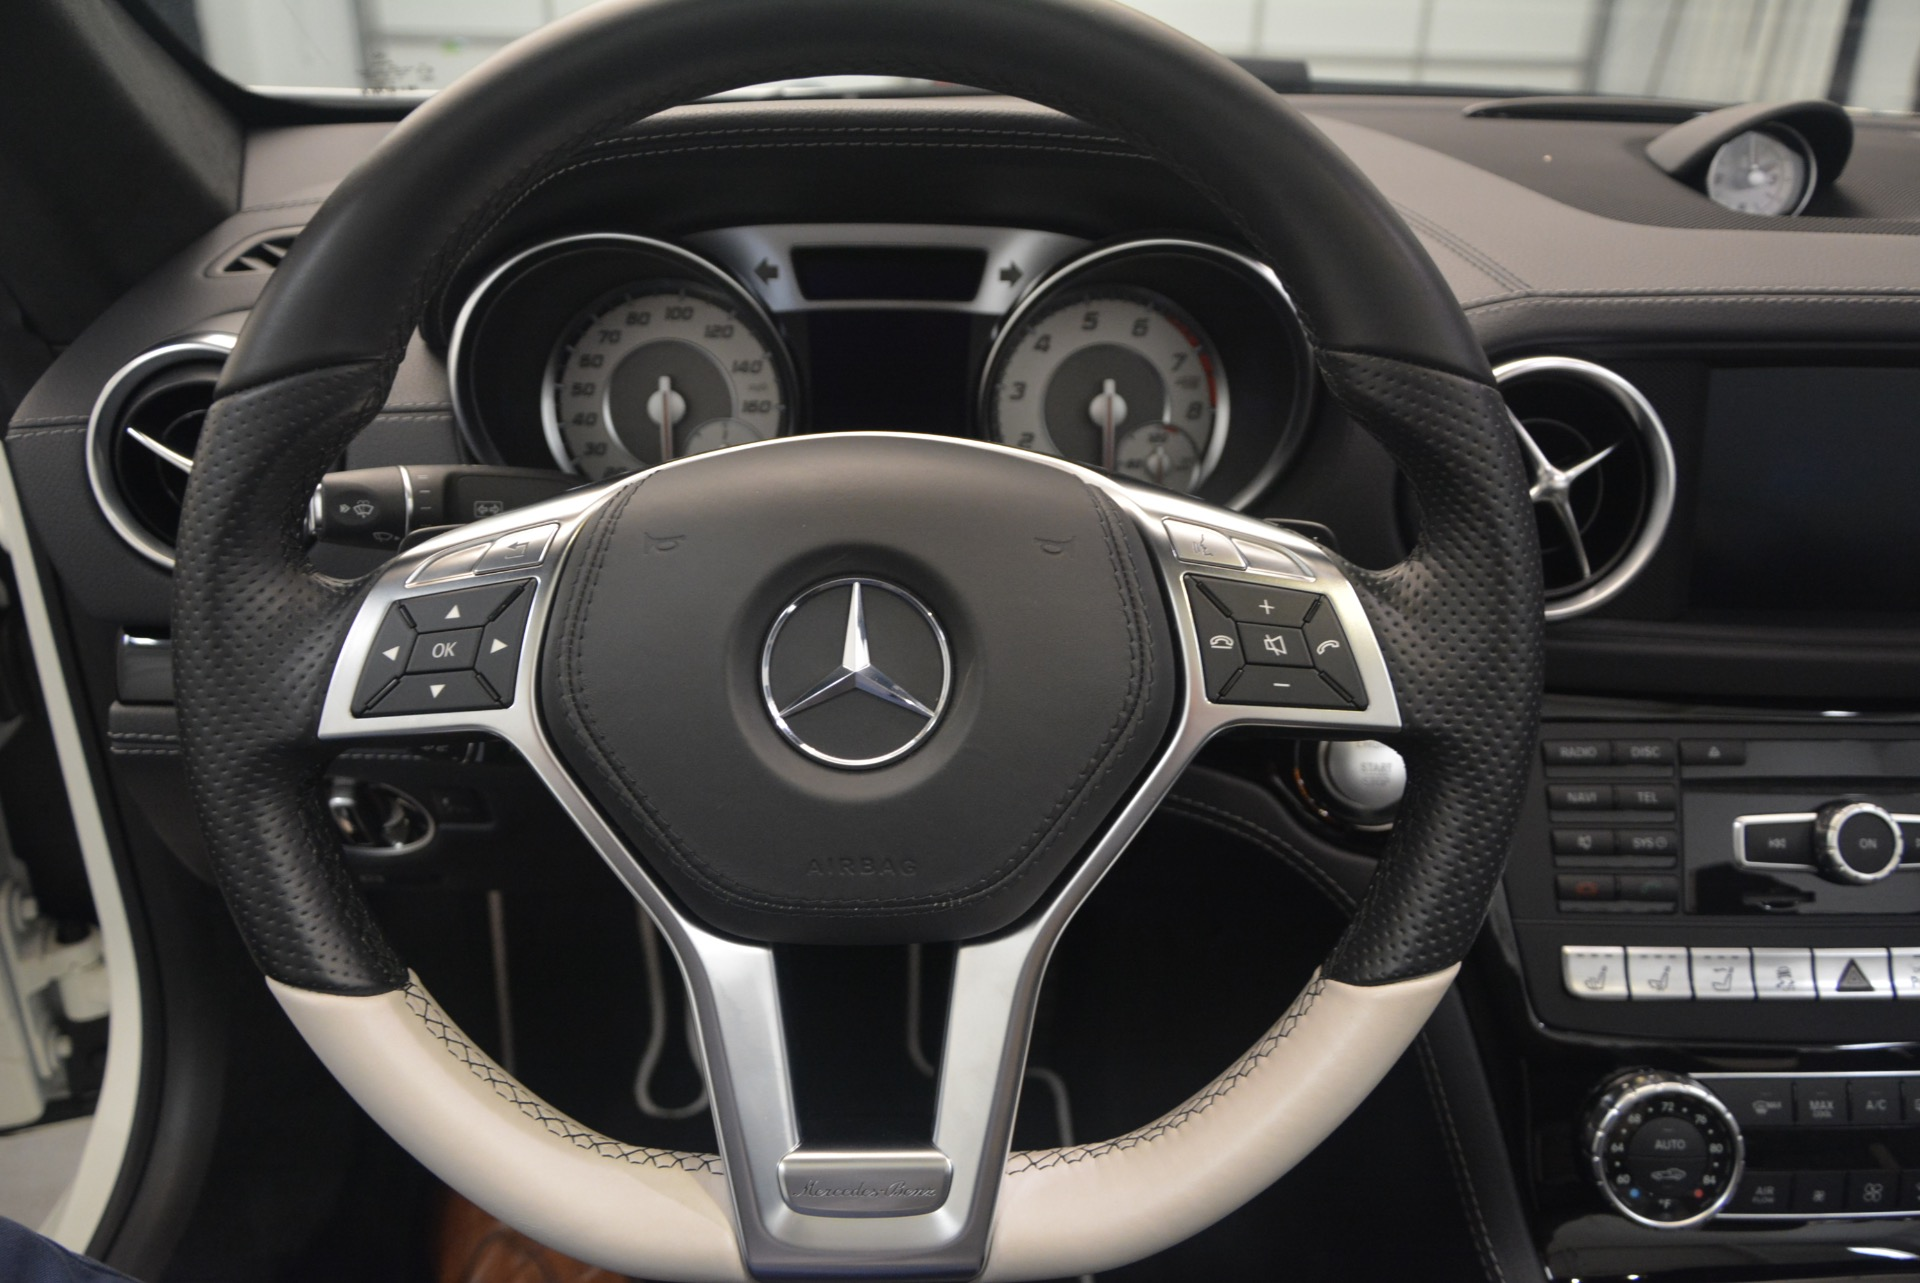 Used 2015 Mercedes Benz SL-Class SL 550 For Sale In Greenwich, CT 1261_p33